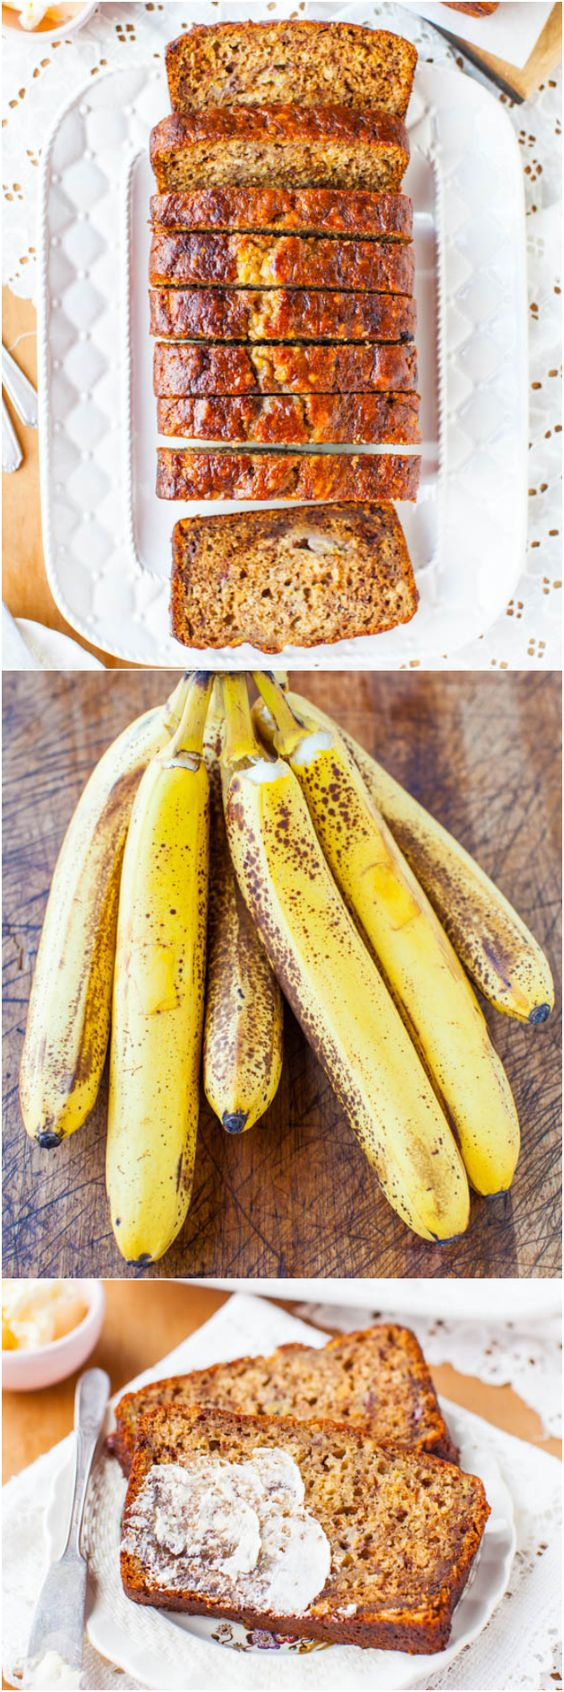 Six-Banana Banana Bread - Yes, 6 bananas in 1 loaf means it's super soft, moist & robust banana flavor! Now you know what to do with all your ripe bananas! [The more #FairTrade bananas, the better in our opinion! :D]